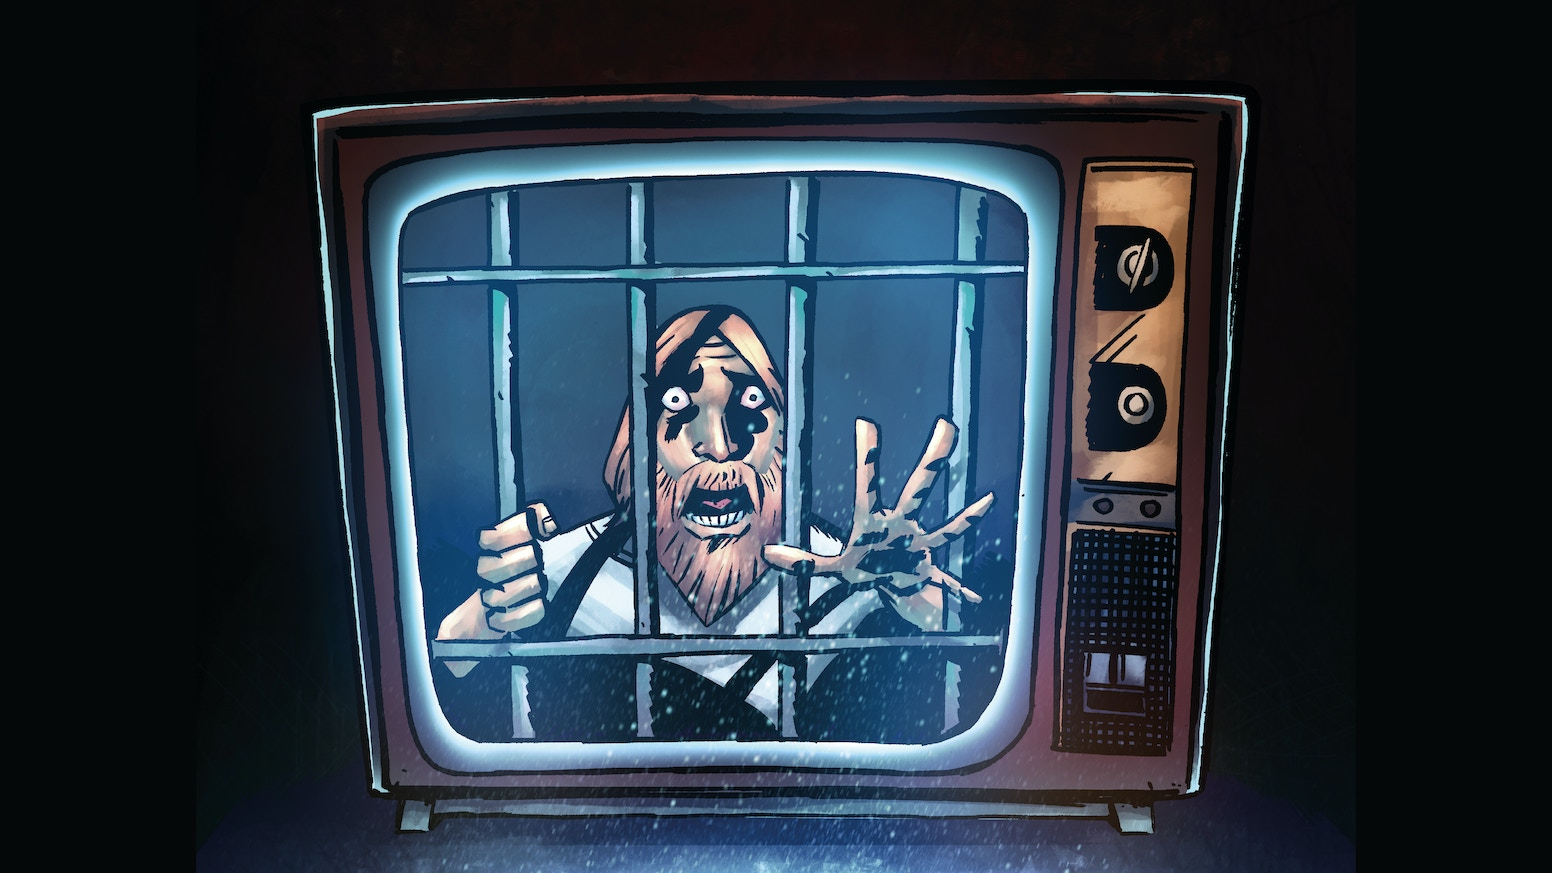 A graphic novel exploring reality TV and the lunatics that create it - where they take a man, lock him in a room and film him going mad